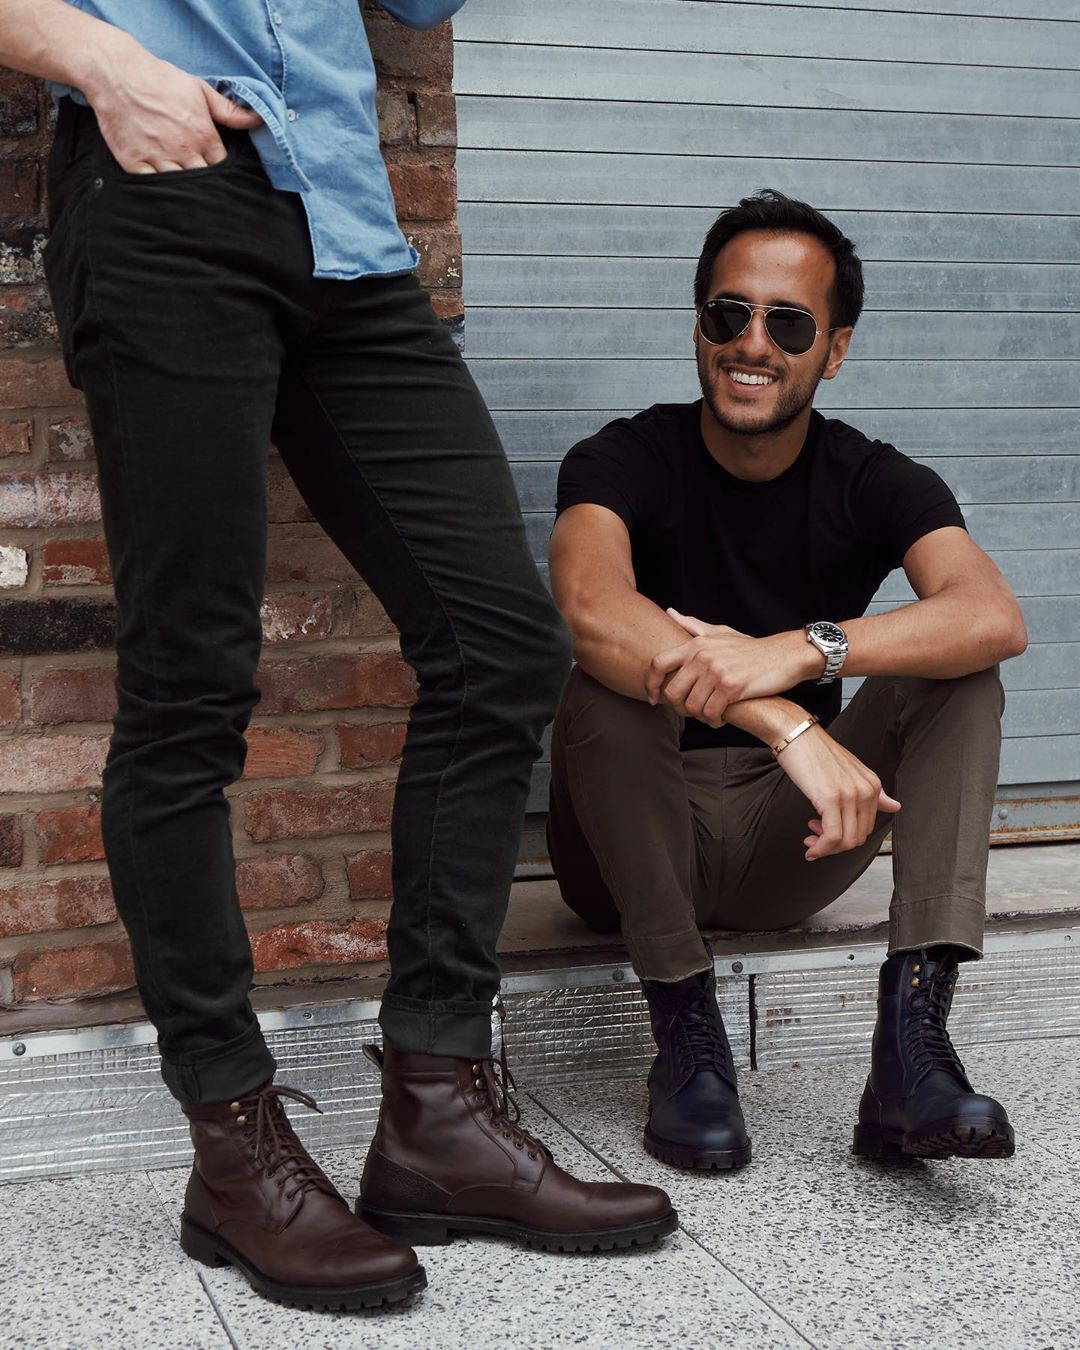 Boots outfit men, Combat boot outfits